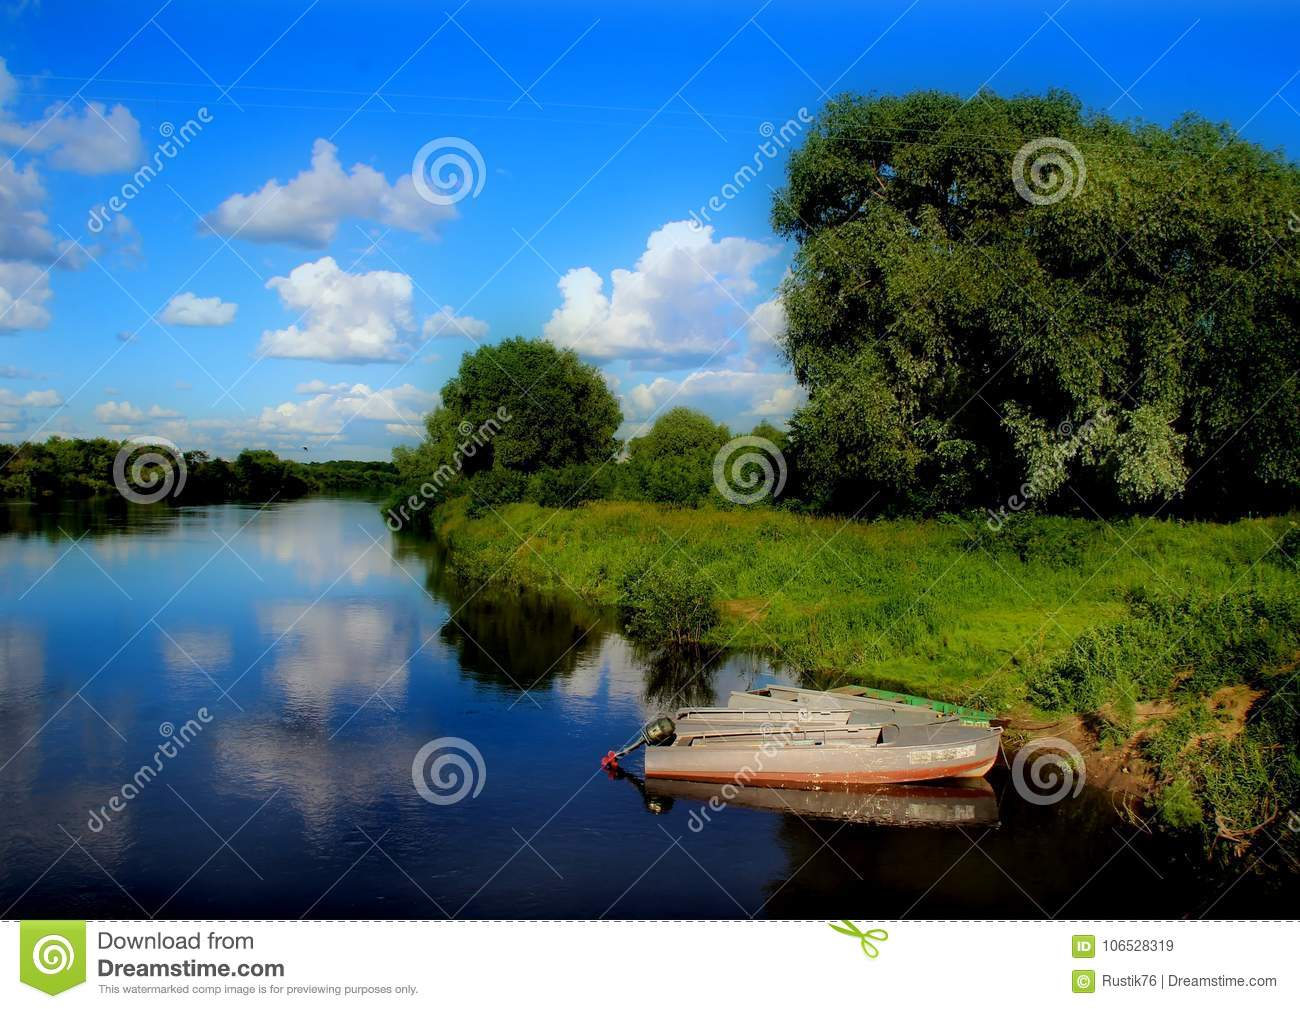 Boat on the picturesque bank of the river Klyazma.